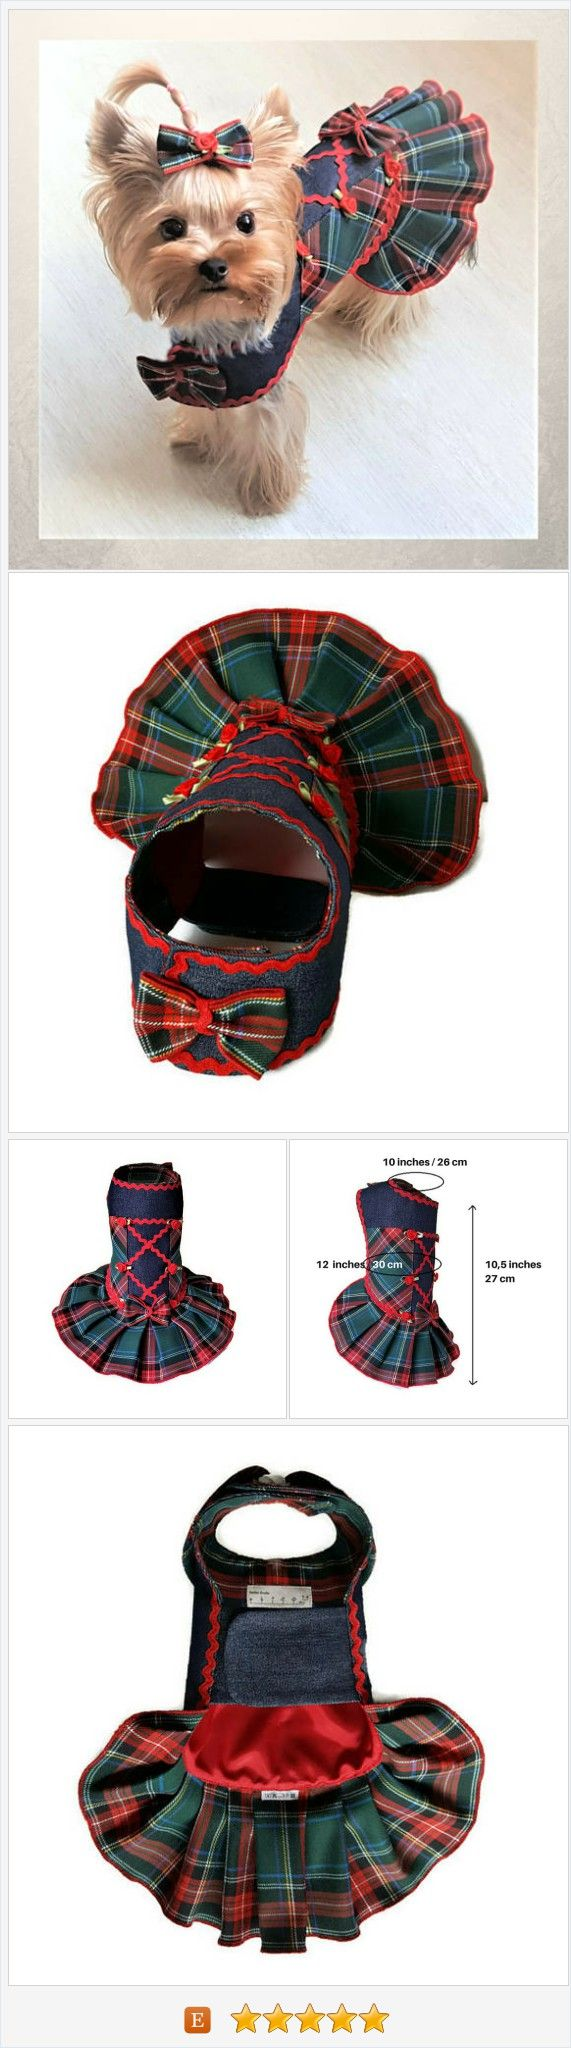 Small dog outfit dress Dress for a dog Dog dresses Small #dog #clothes Cute clothes for dog Dog birthday dress Yorkie clothes Girl dog clothes #dogdress #dogclothes #tartan #tartandress #yorkieclothes #smalldogfashion https://www.etsy.com/SmallDogFashion/listing/558555897/small-dog-outfit-dress-dress-for-a-dog?ref=related-4